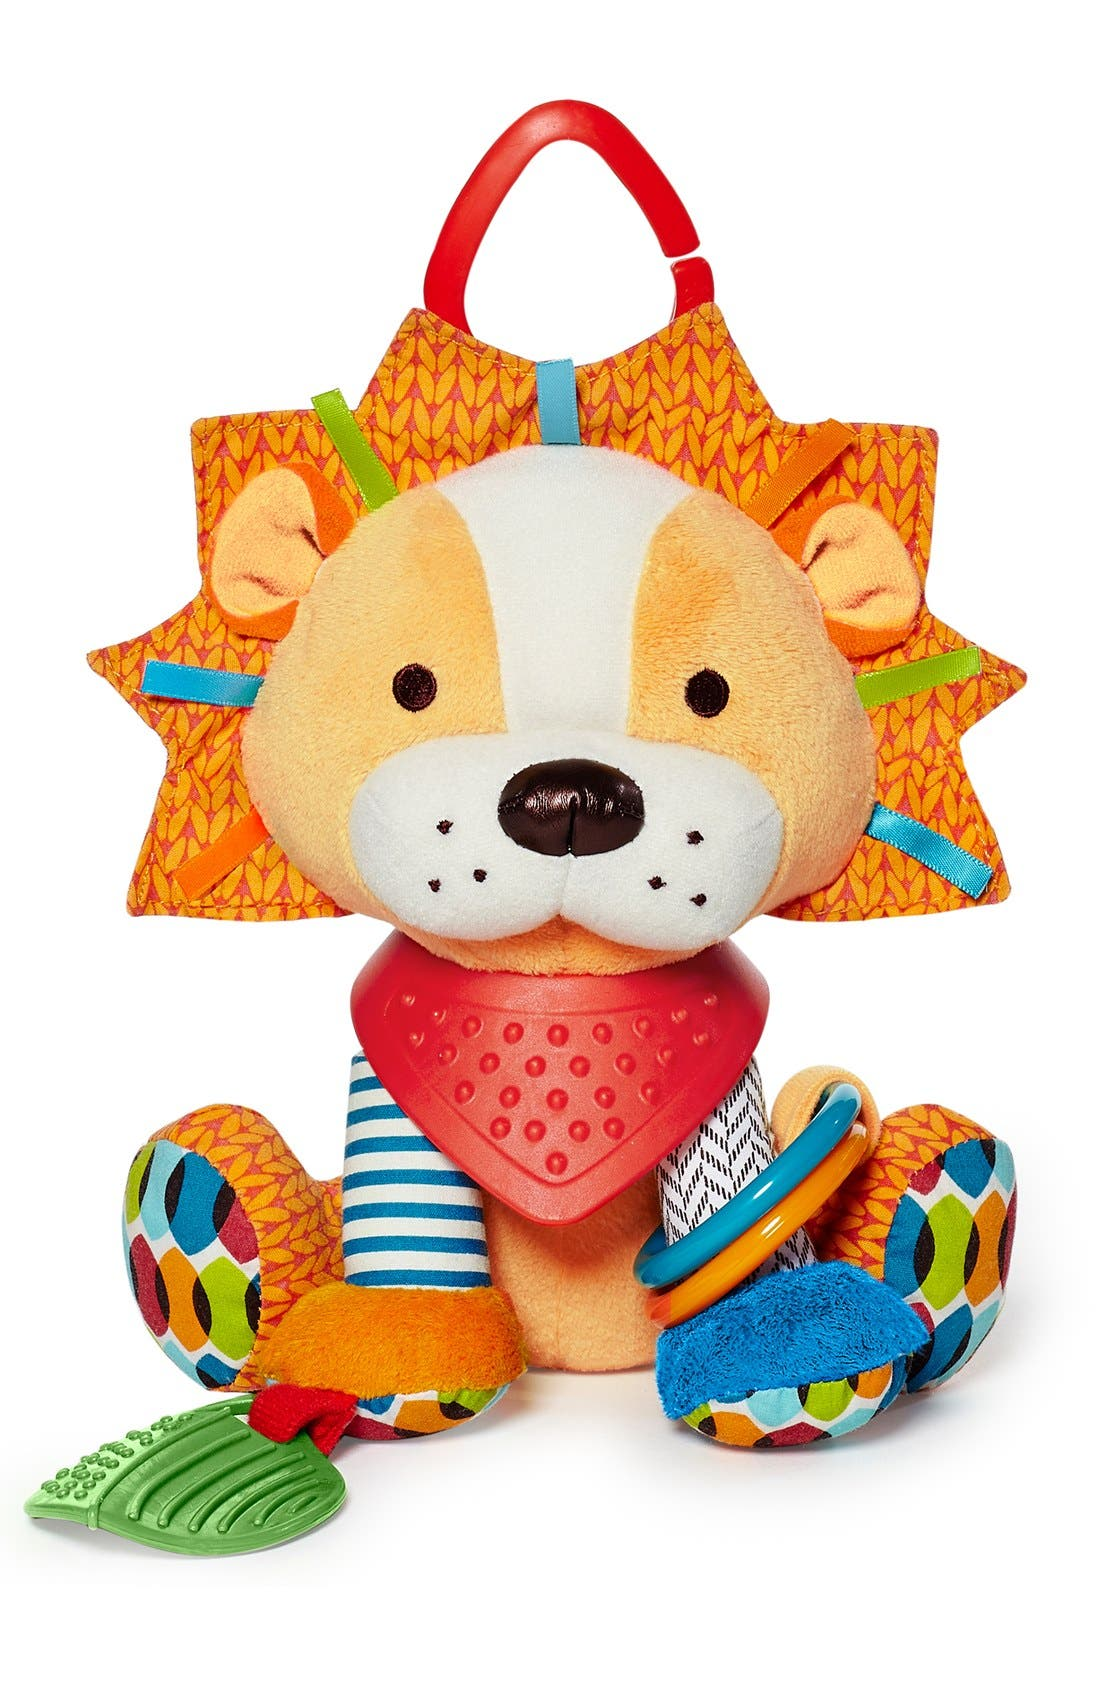 Skip Hop 'Bandana Buddies' Activity Lion